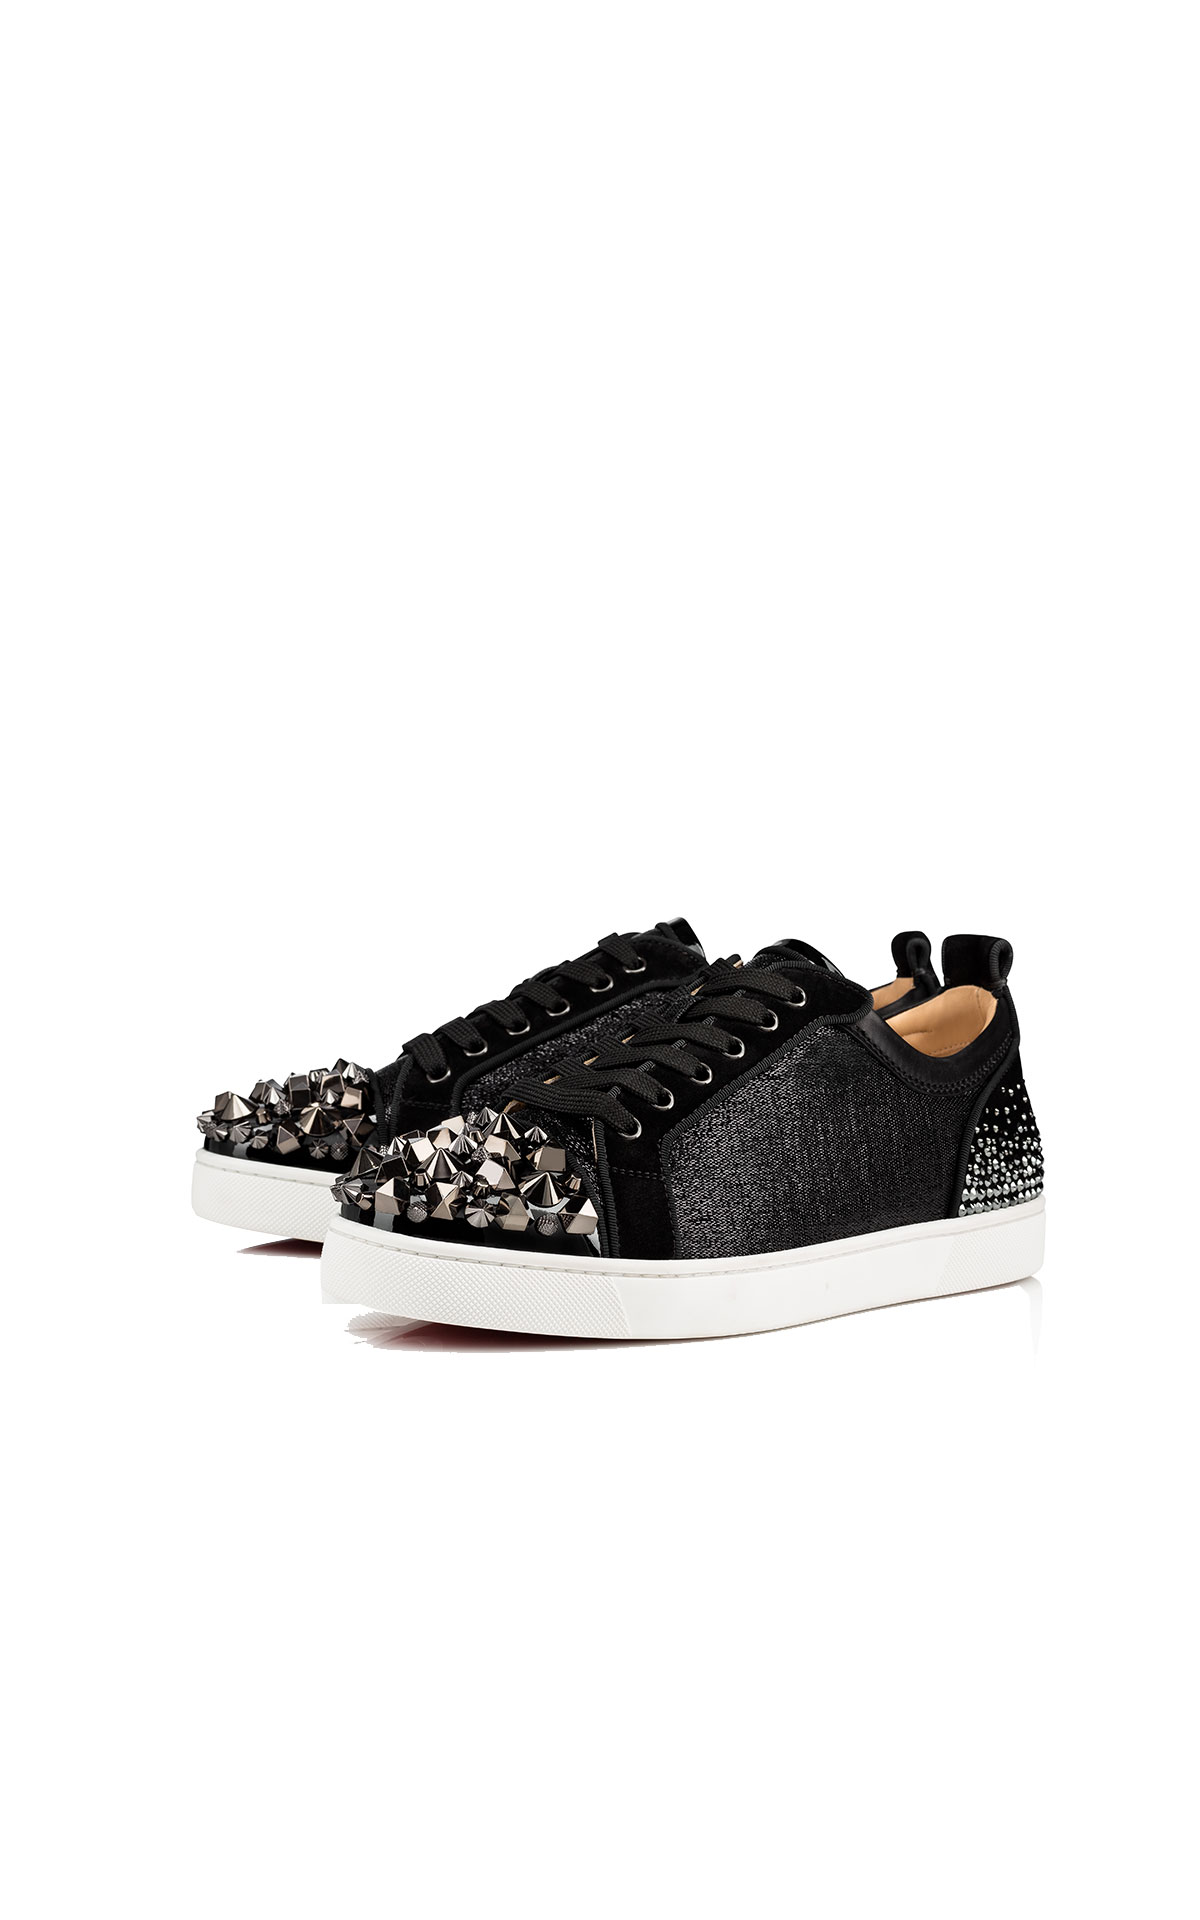 Christian Louboutin Louis junior mix degra from Bicester Village